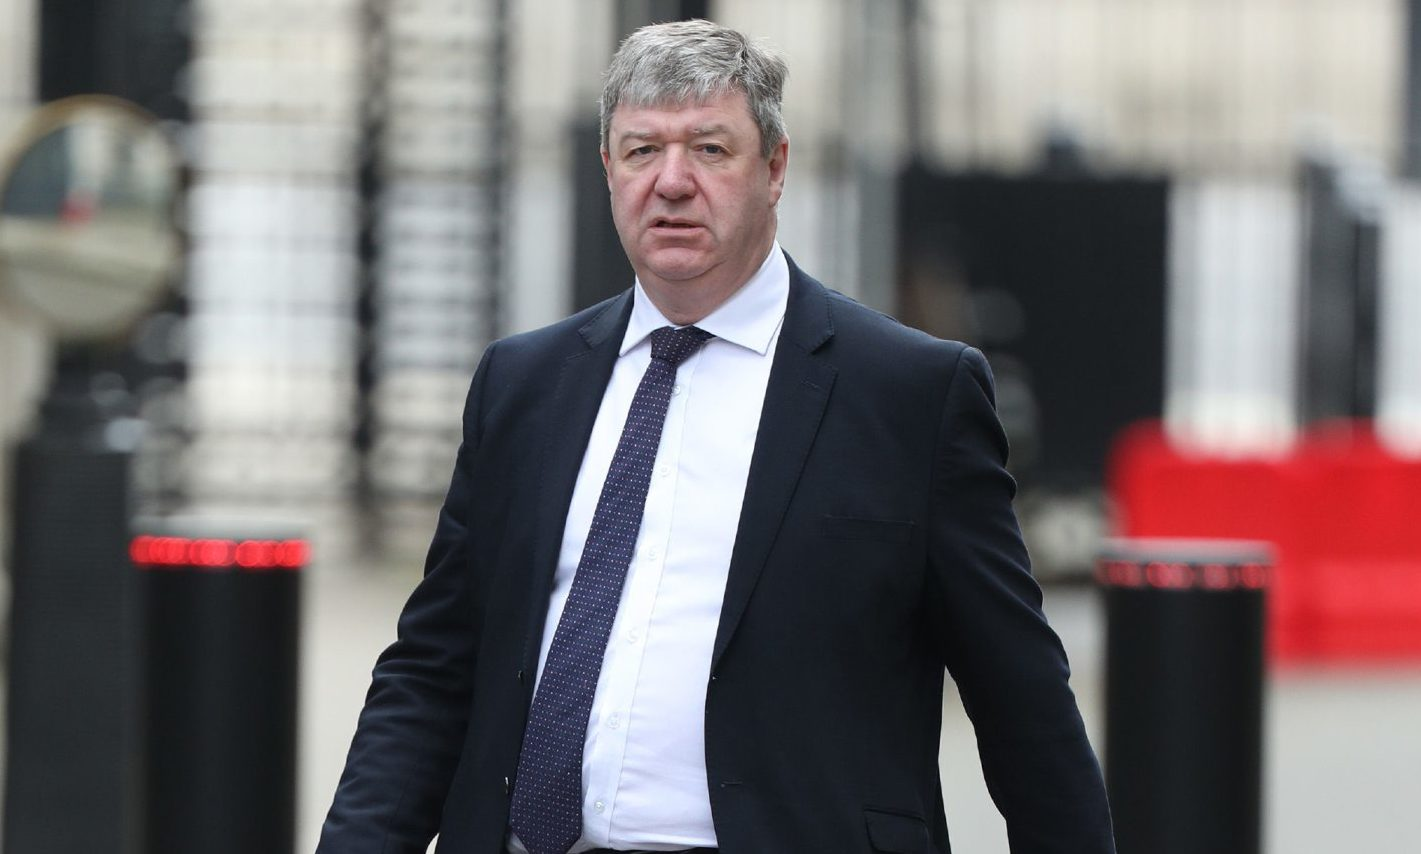 Liberal Democrat MP Alistair Carmichael.